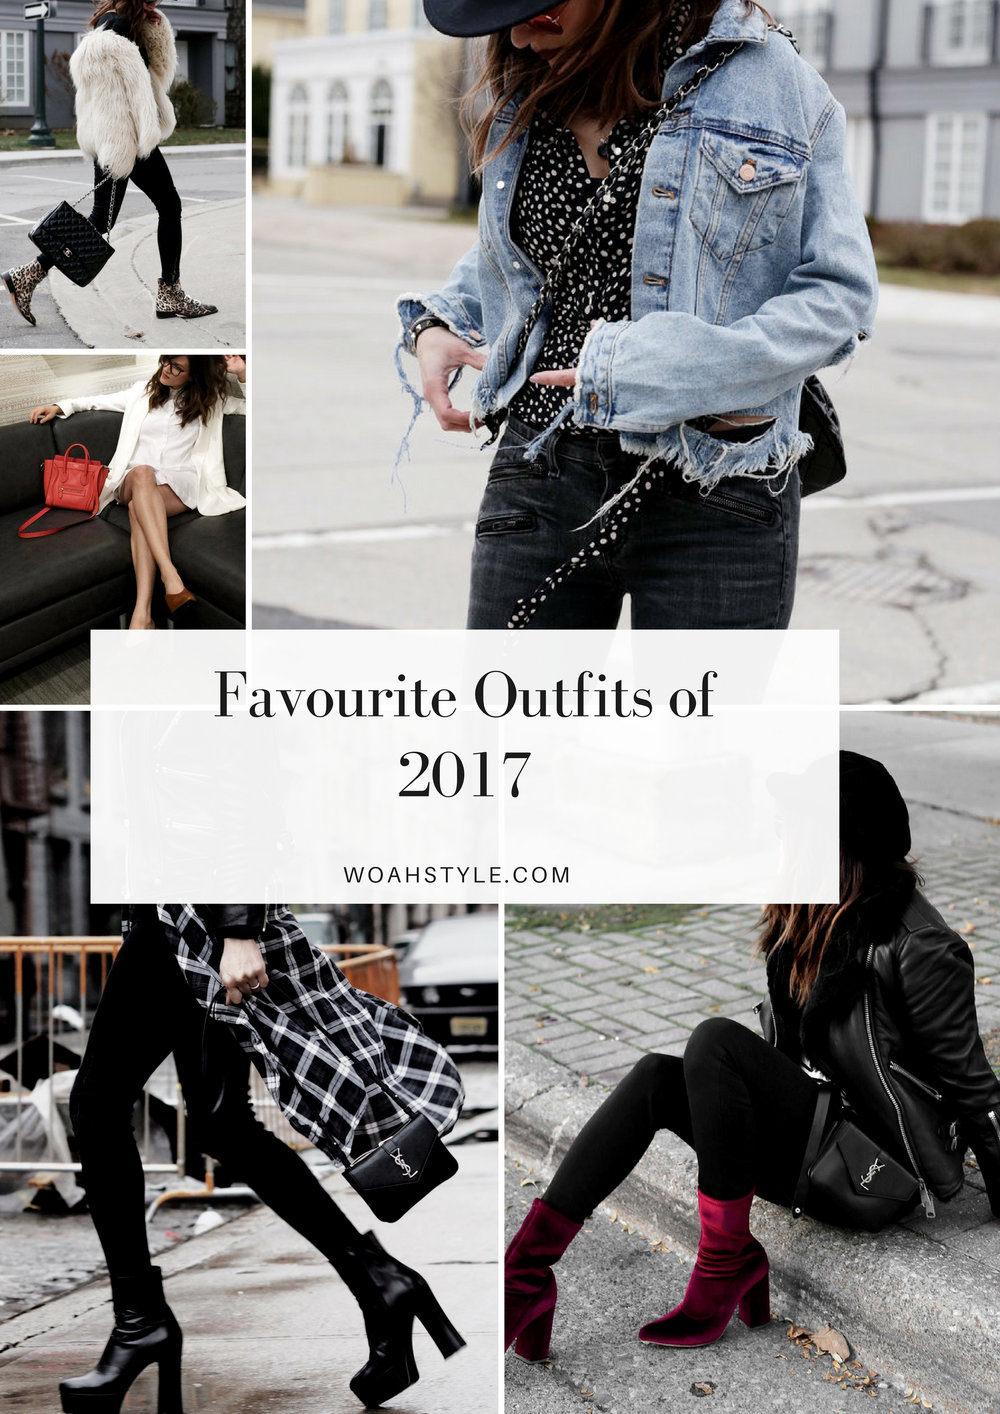 my favorite outfits of 2017 - woahstyle.com - rocker chic.jpg